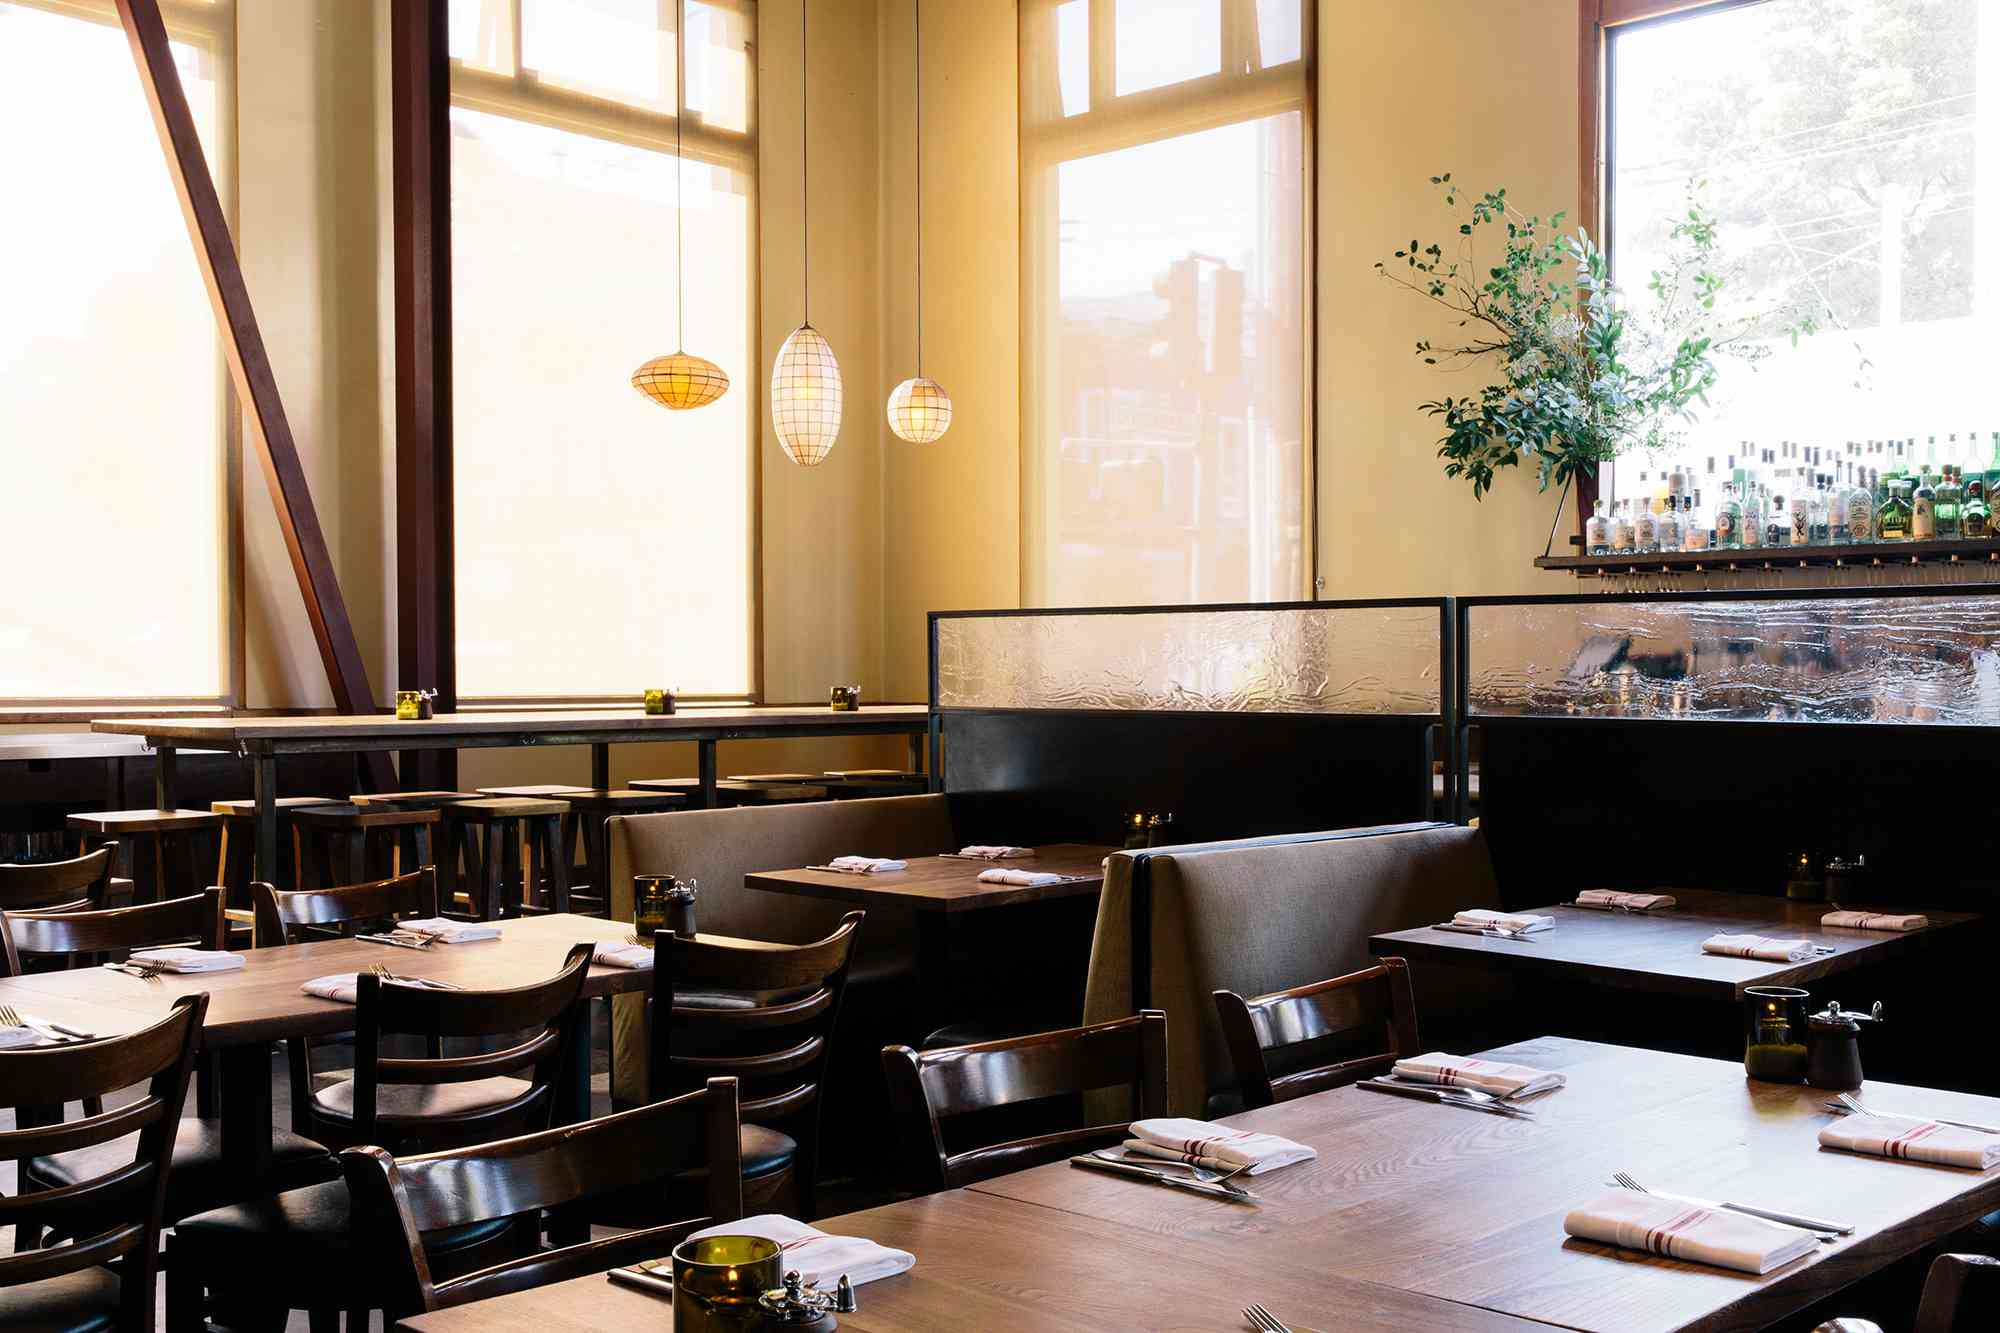 Airy, empty dining room in the Nopa restaurant with